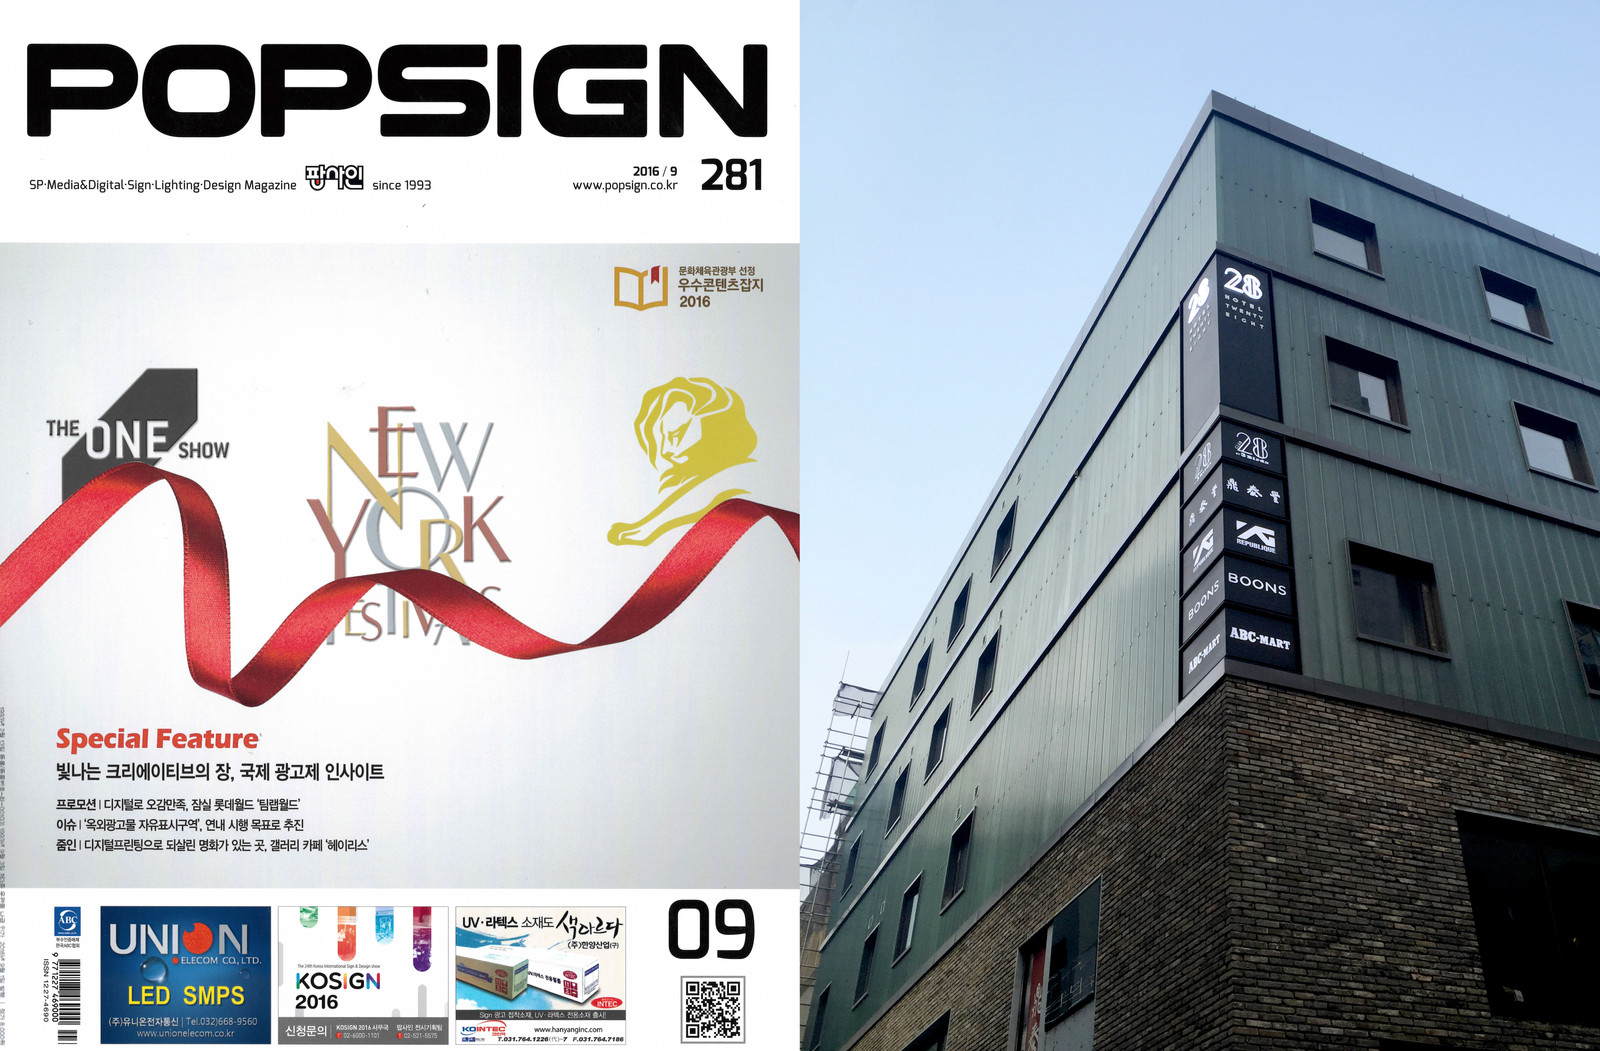 Interview 'Hotel 28 Signage' in September's edition of Magazine 'Pop Sign'